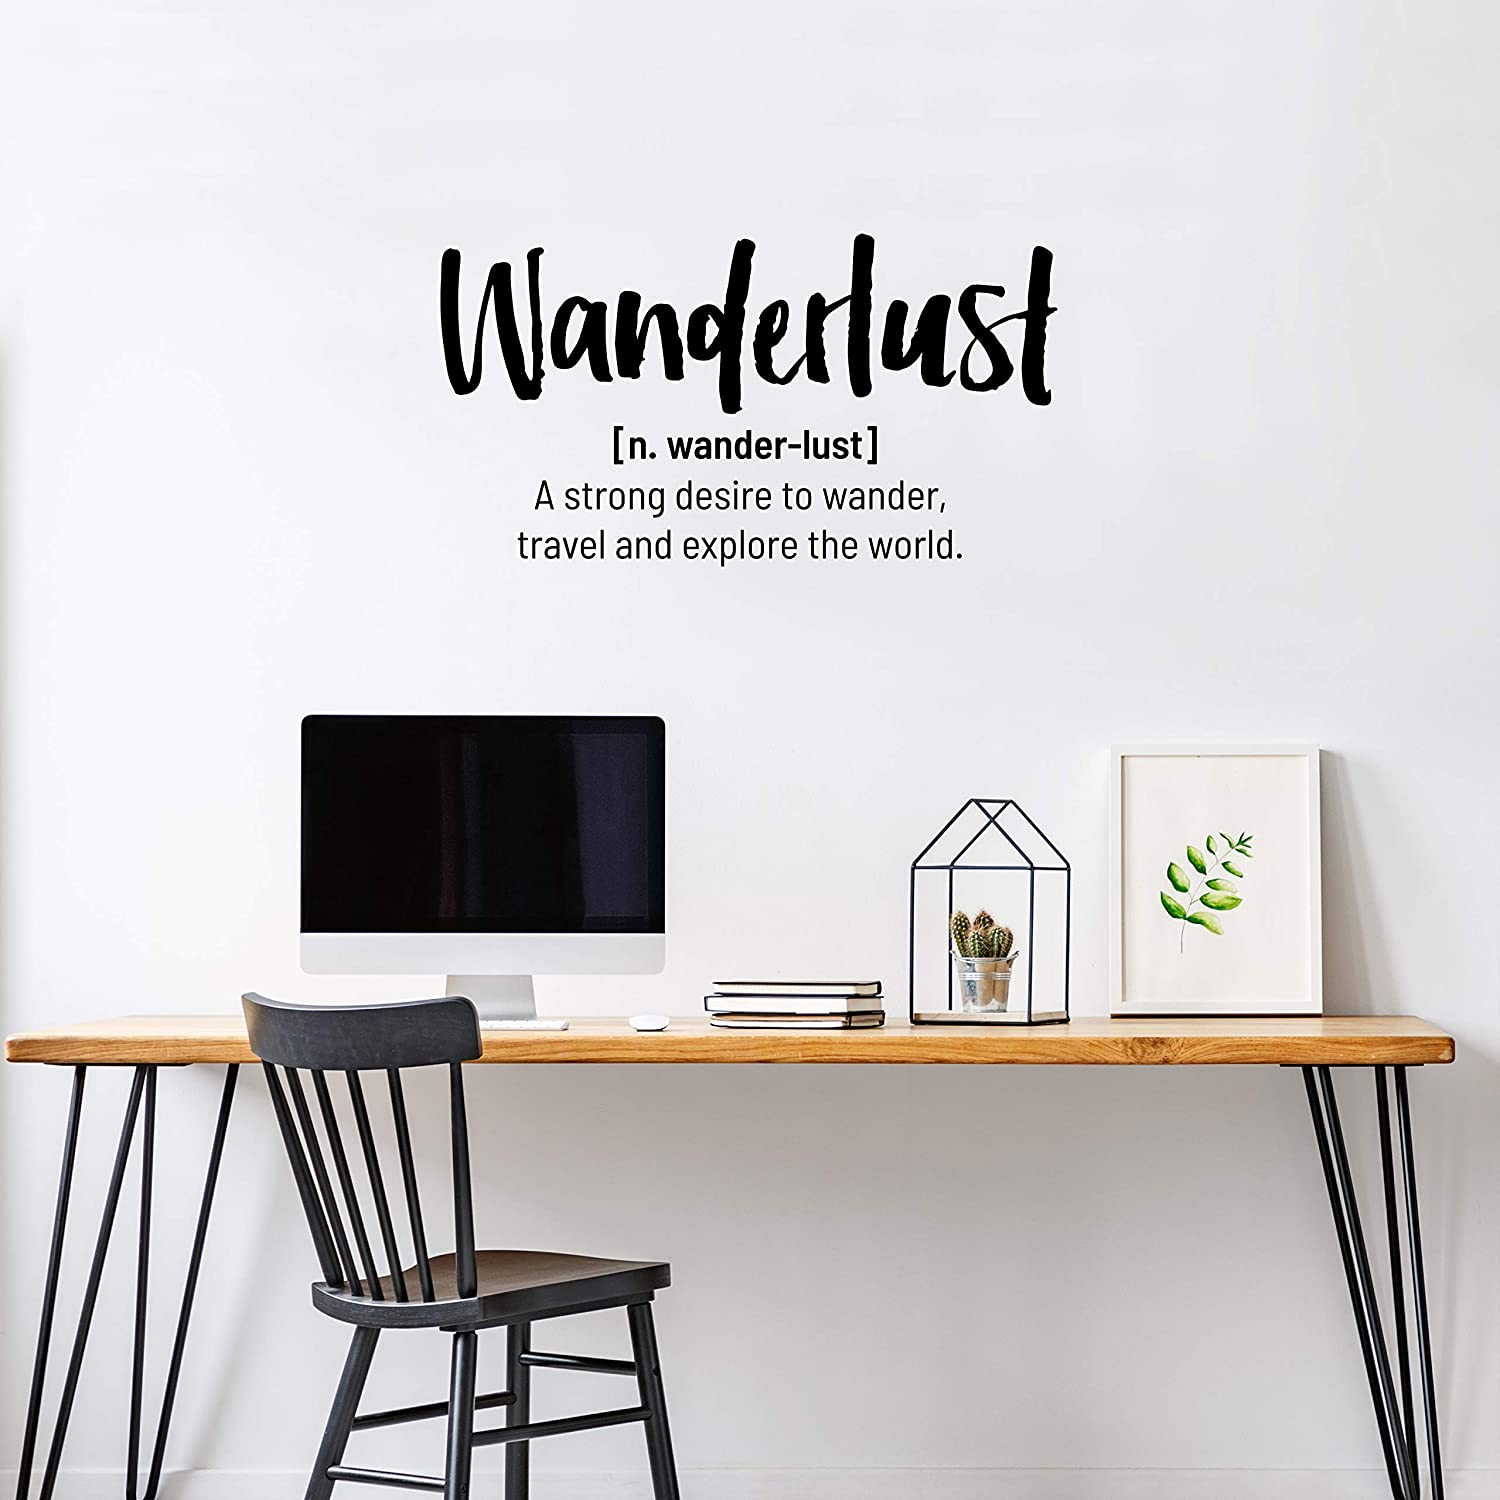 Vinyl Wall Art Decal - Wanderlust Definition - 21